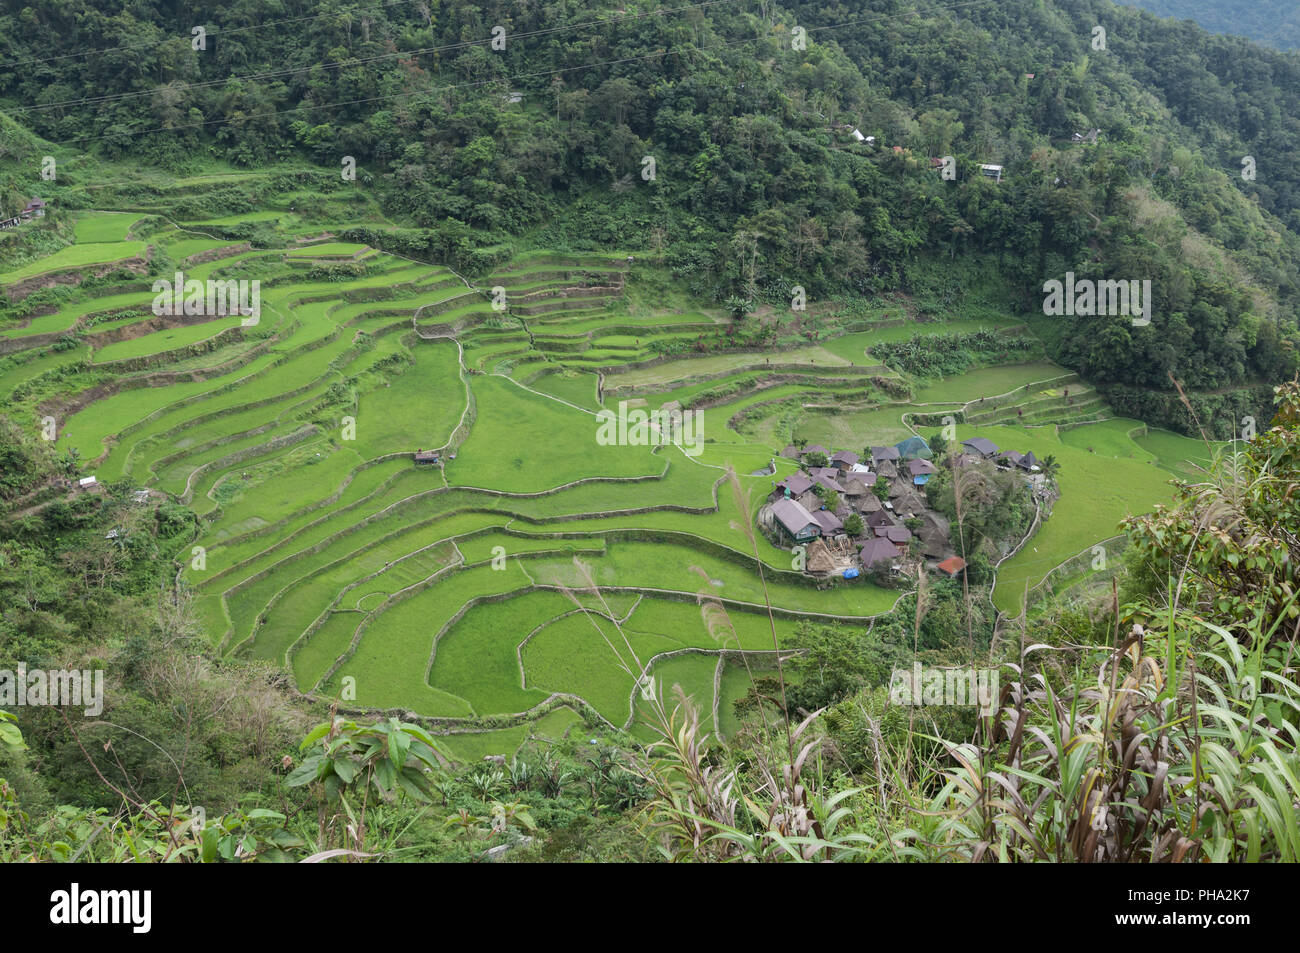 Green rice field on the island of Luzon, Philippines. - Stock Image